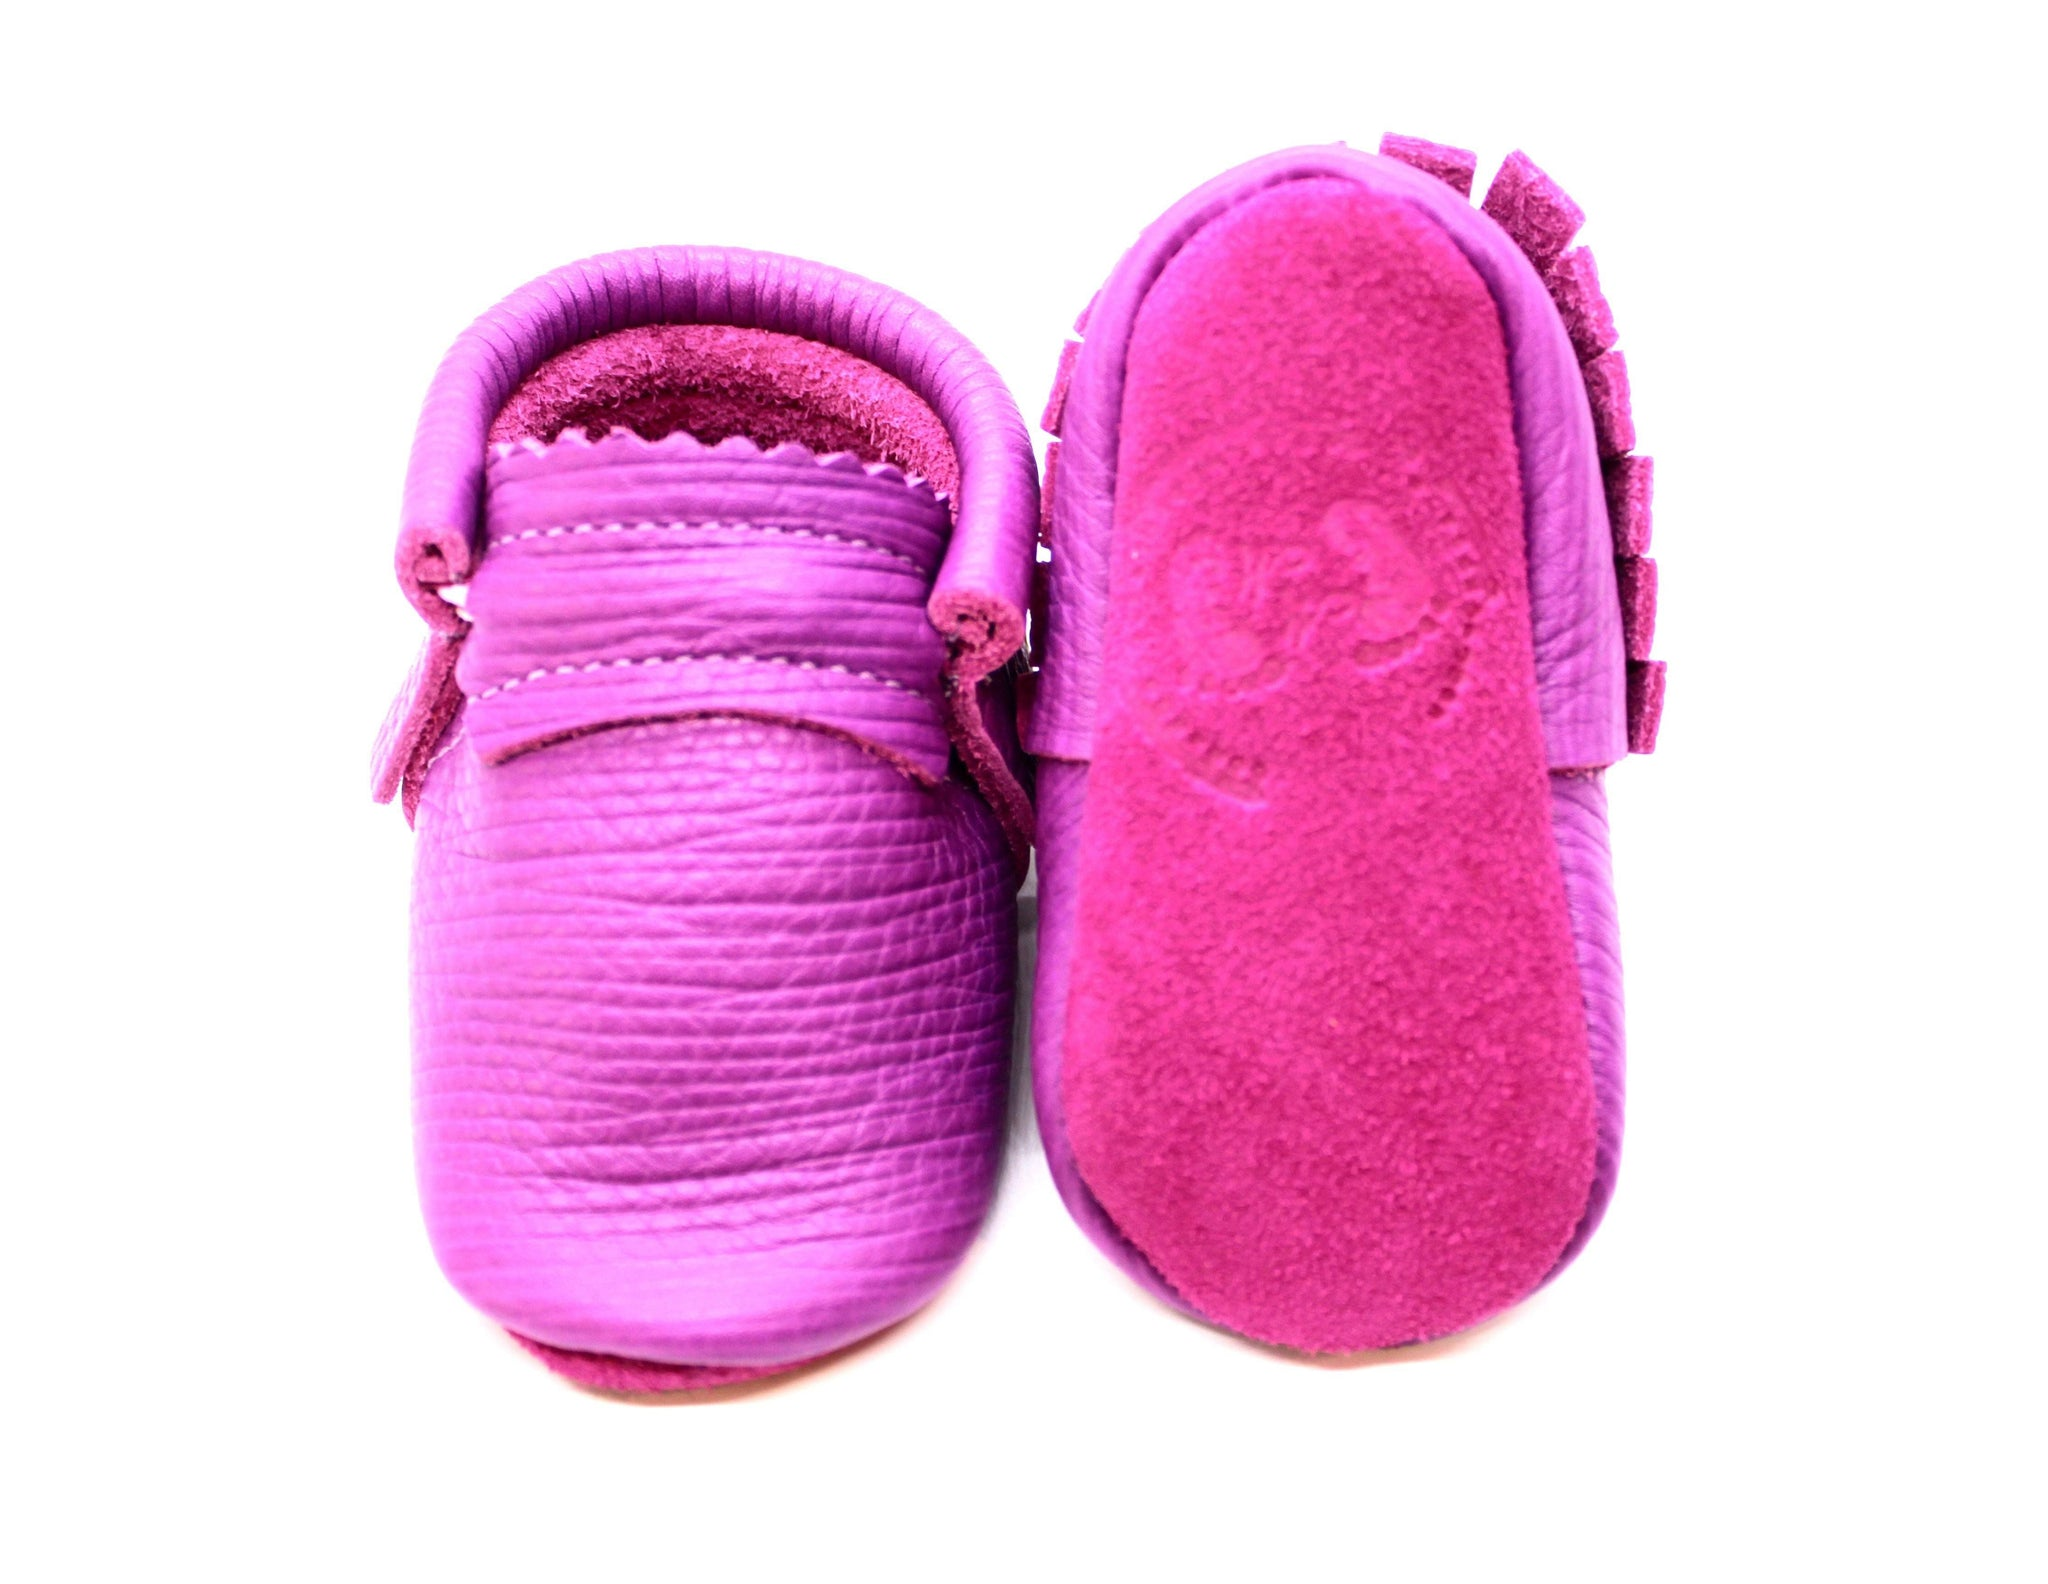 Raspberry Sherbert moccs -Limited Edition